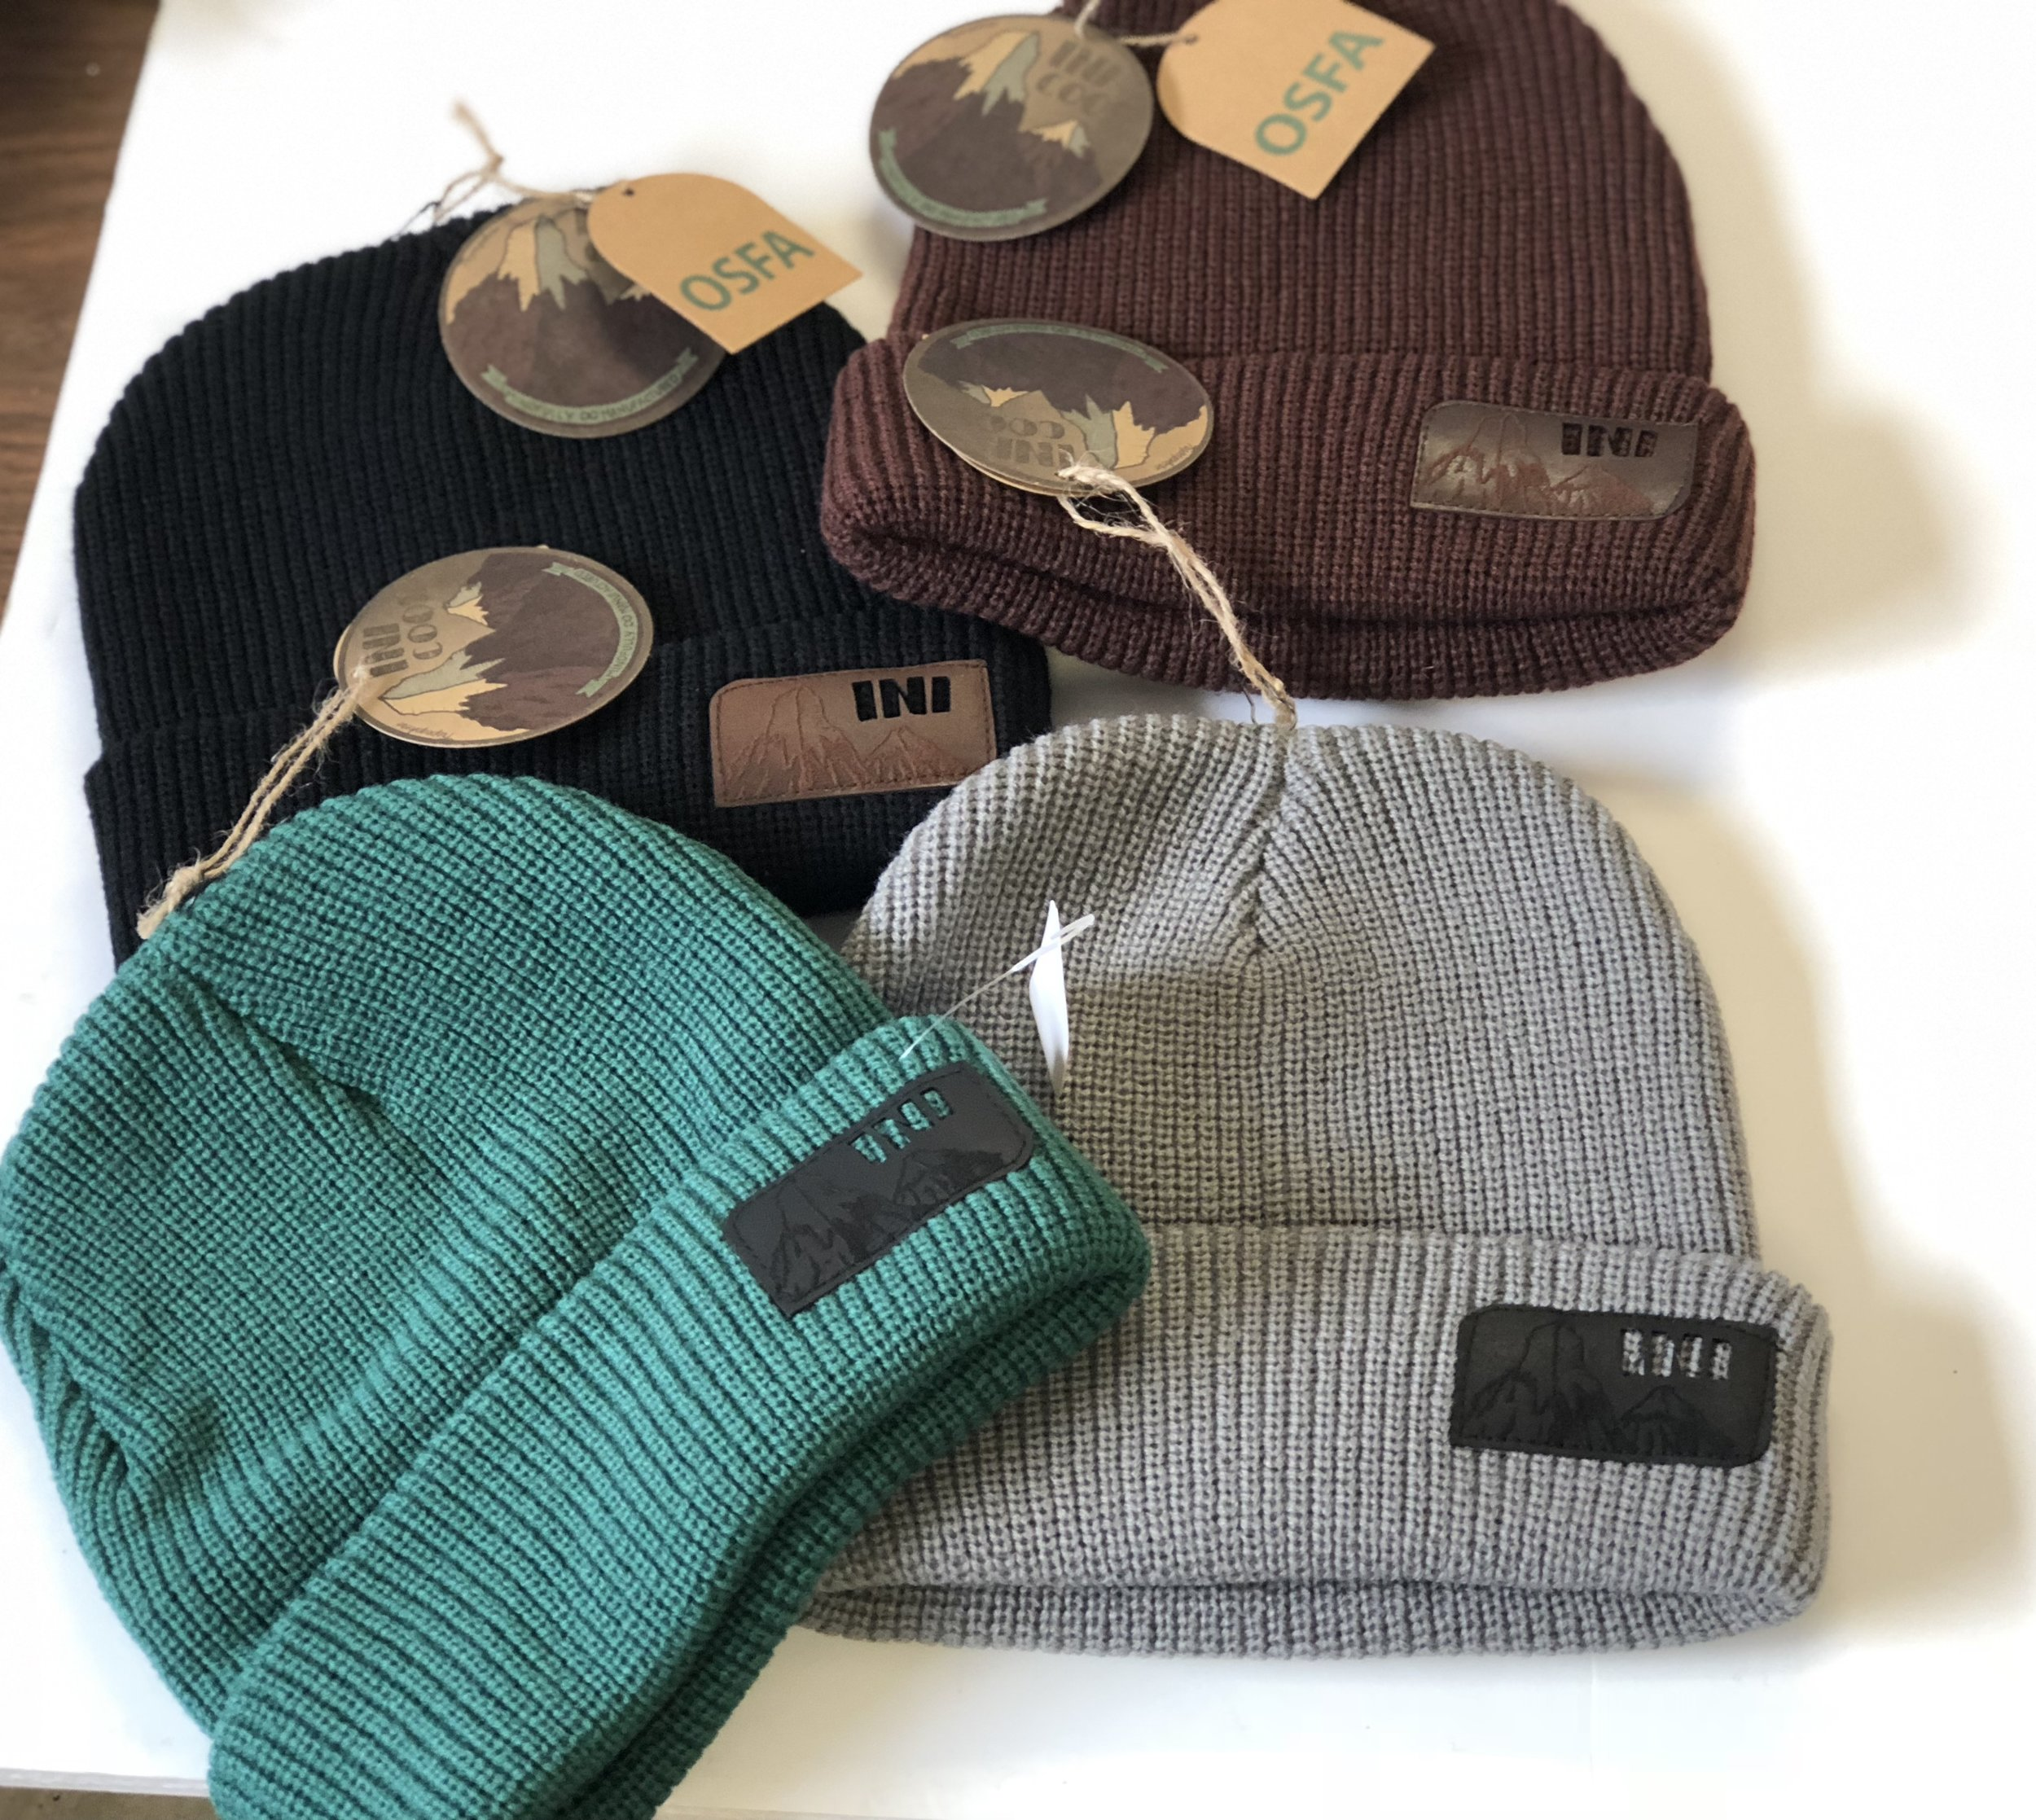 ini COOPERATIVE knit hats/beanies, 4 colors (grey, black, blue, brown), 650 pieces